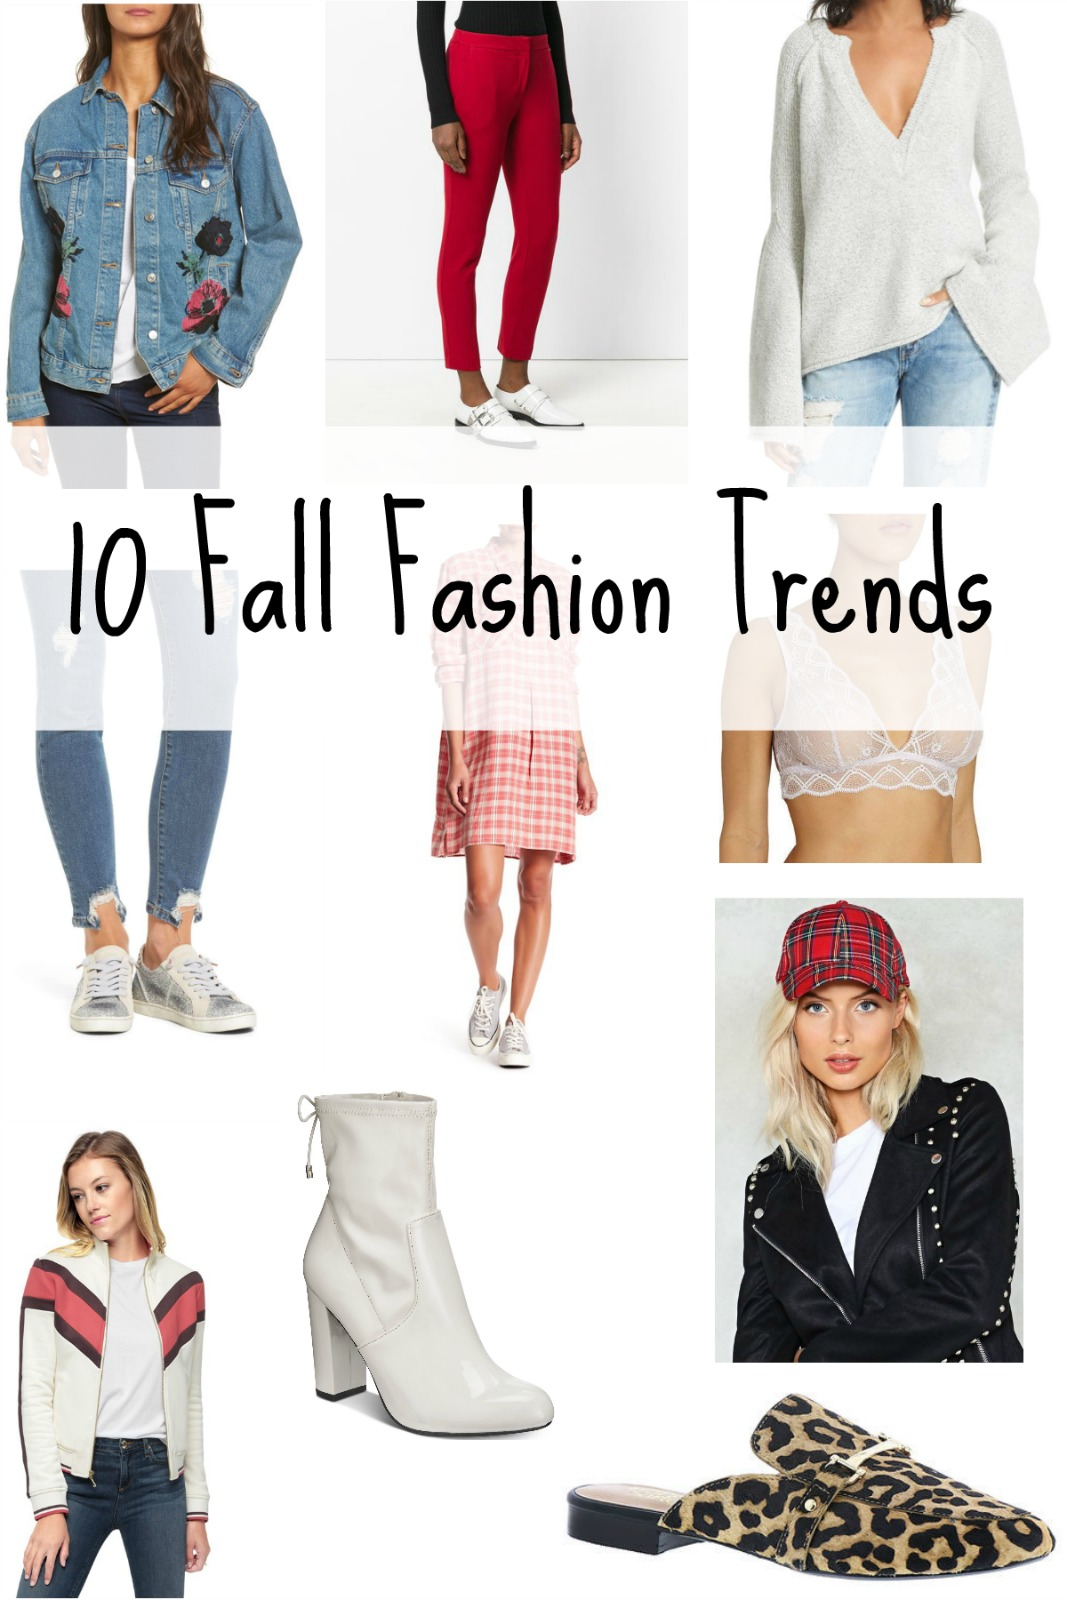 Today I am sharing 10 Fall fashion trends that I am loving.